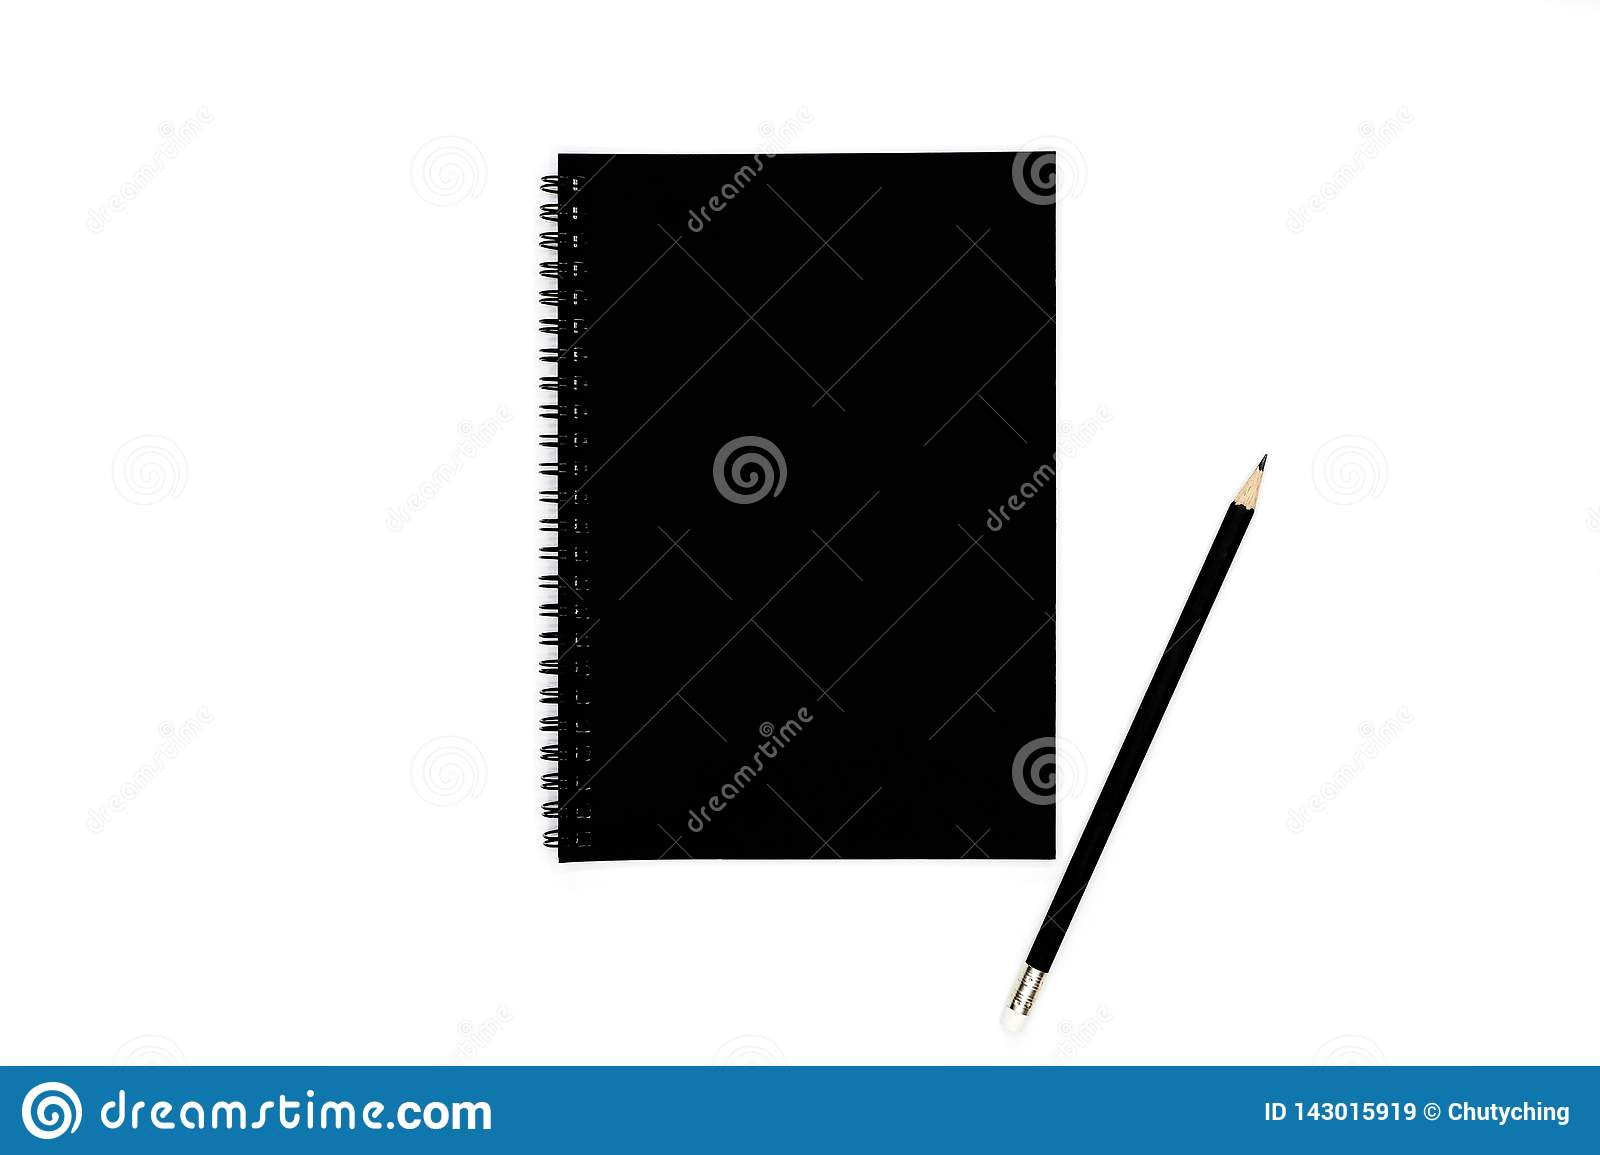 Black spiral notebook with black pencil, isolated on white background.